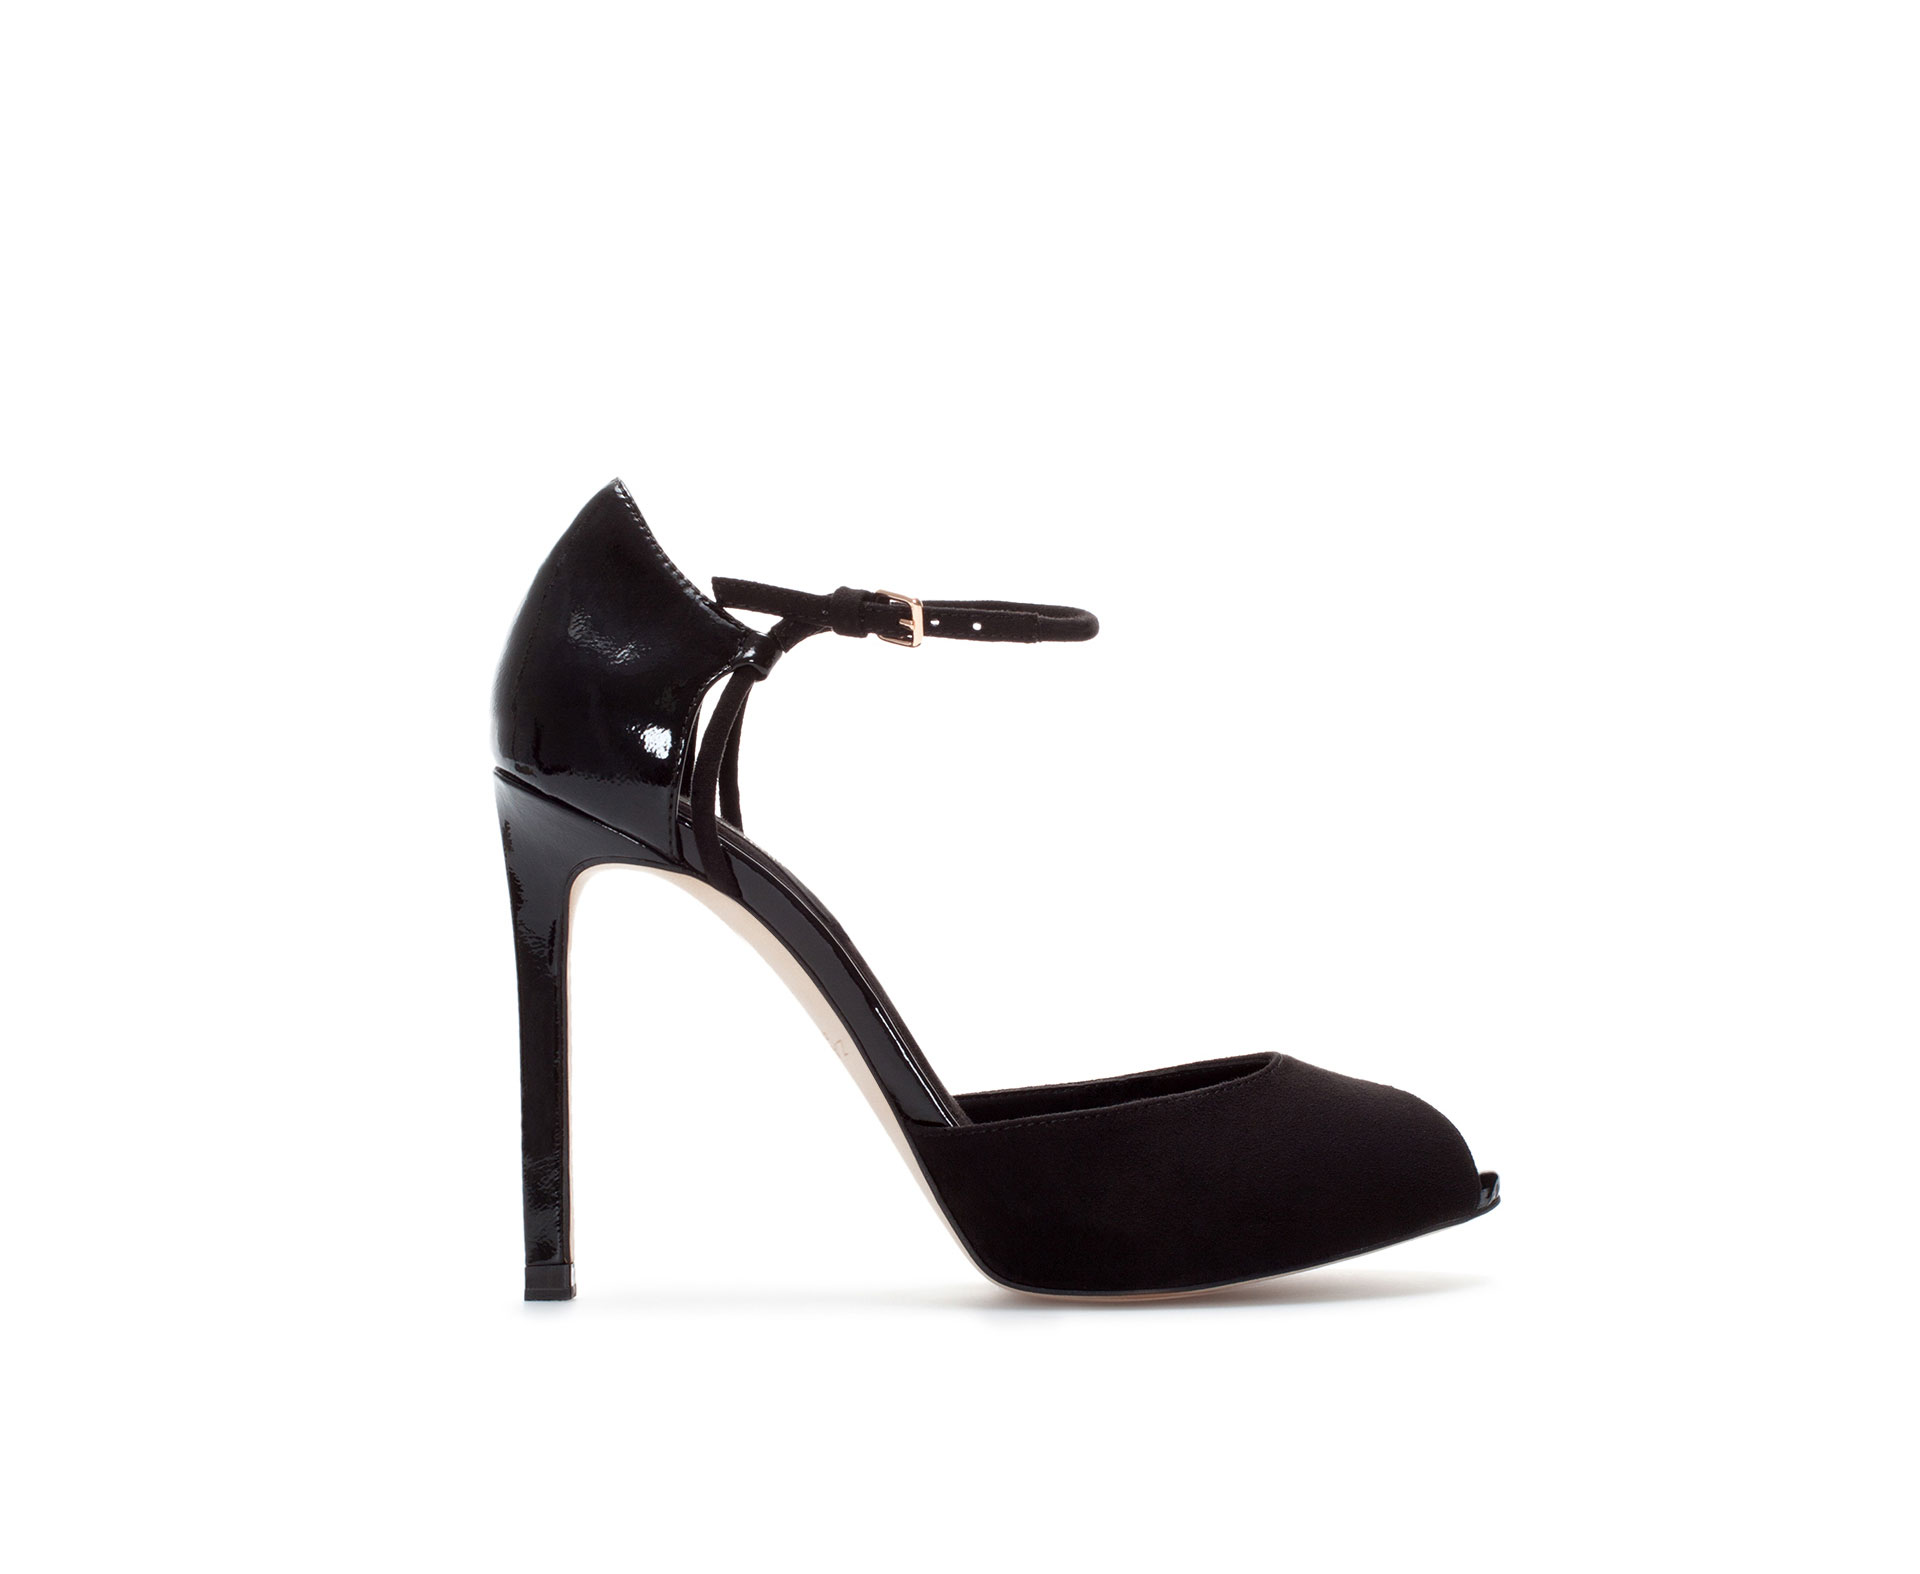 Zara High Heel Sandals with Ankle Strap and Platform in Black | Lyst